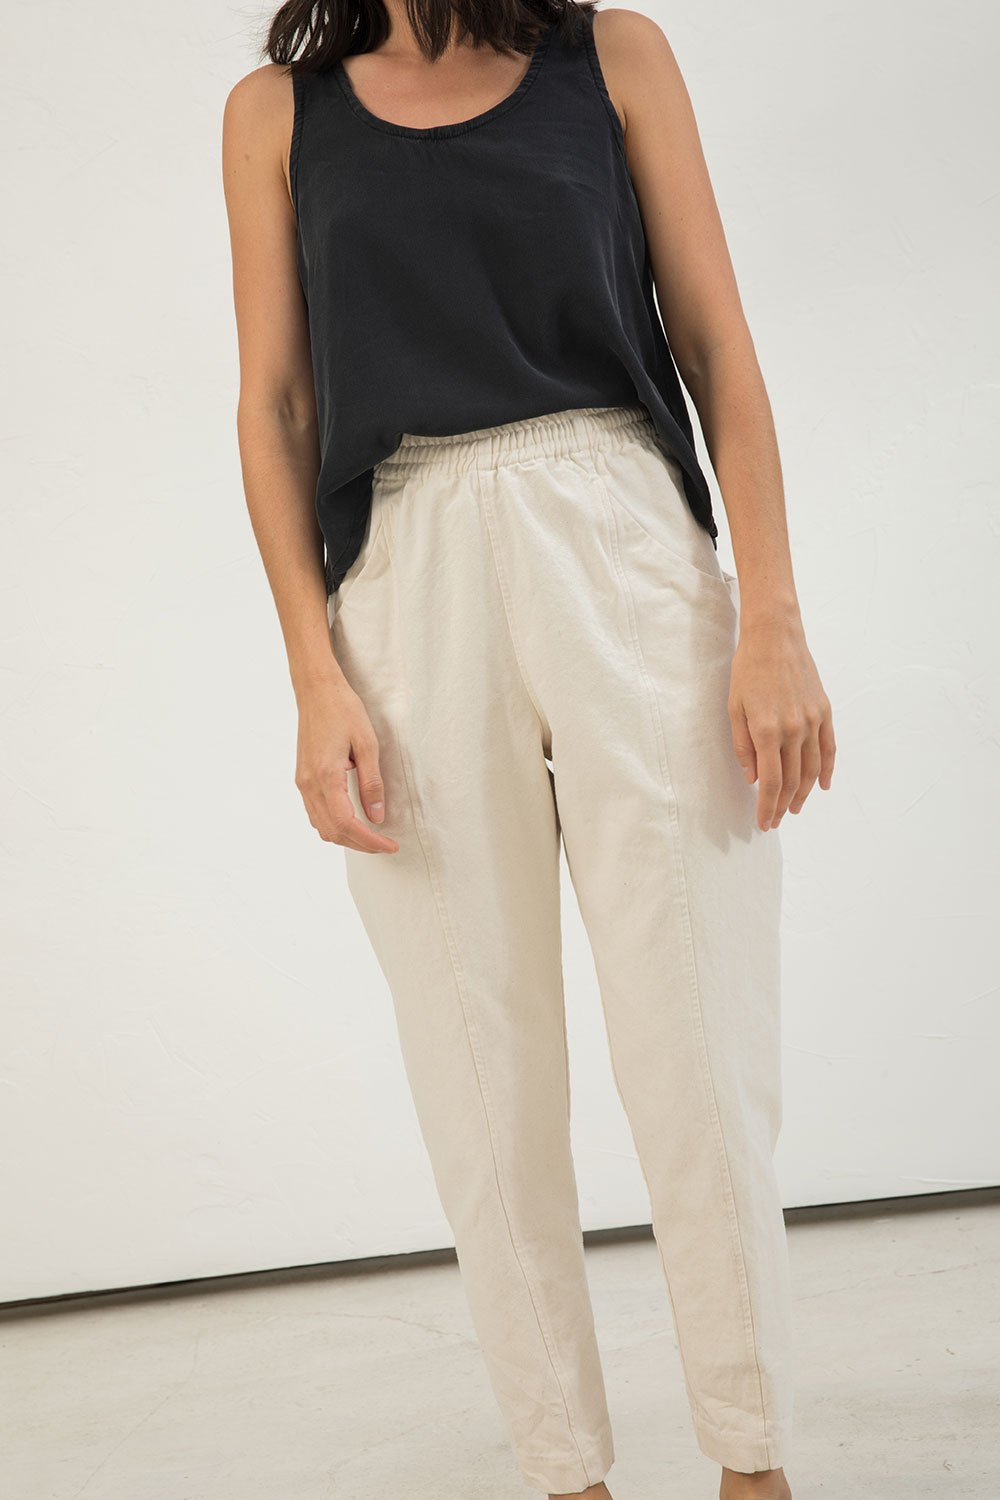 Clyde Work Pant - Elizabeth Suzann